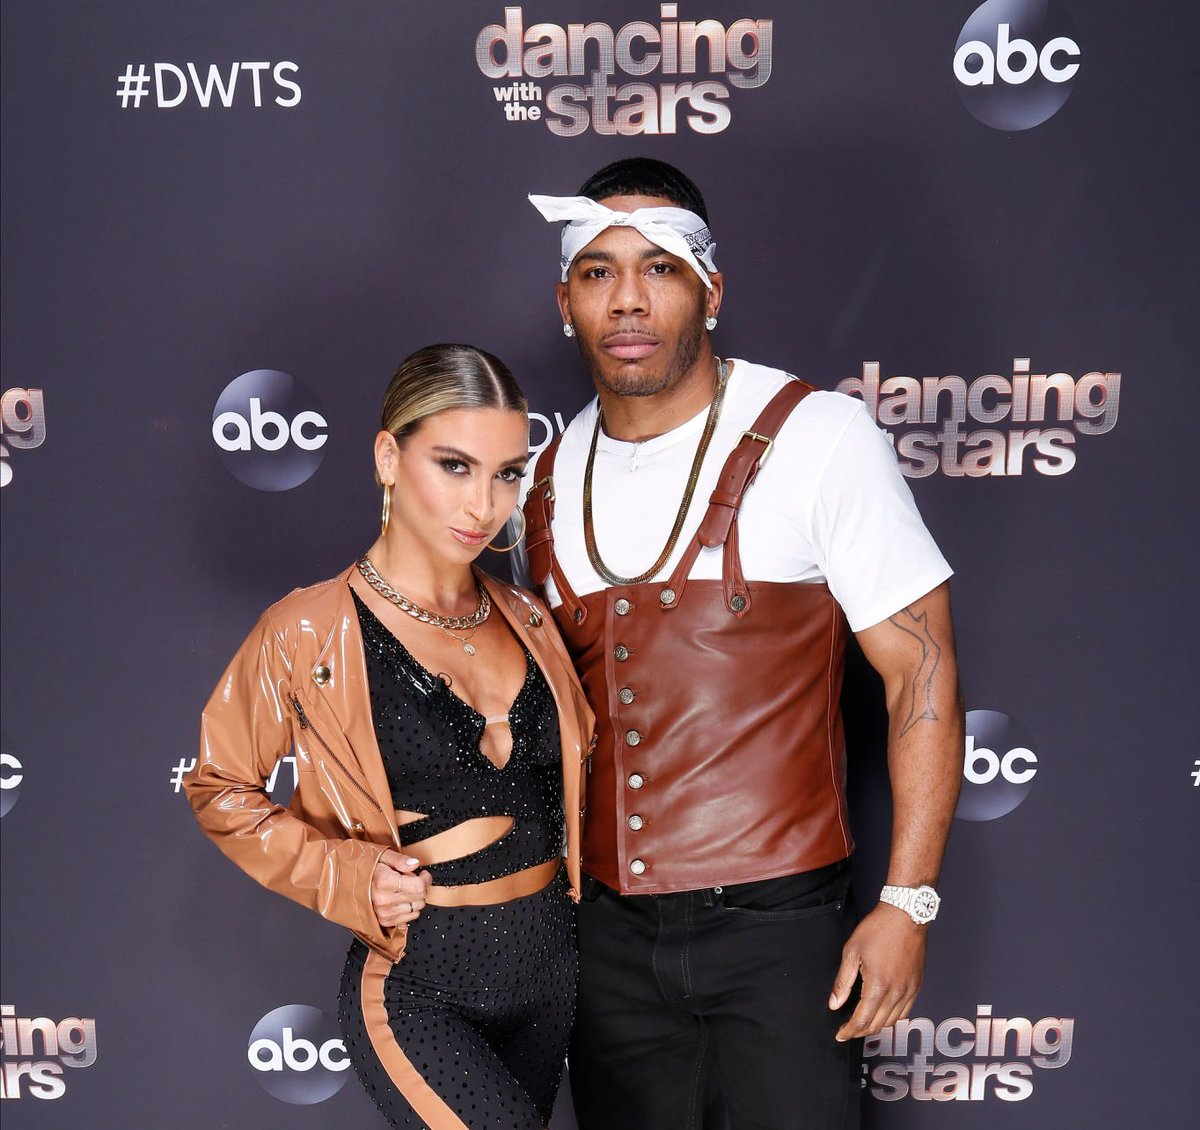 @Nelly_Mo is such an inspiration. Just shows you that it's never too late to start dancing and looking good doing it! This is what @DancingABC is all about. He's the sweetest and so determined. I'm truly amazed watching his hard work pay off 🙏🏼 #proud #mutharussia #TeamDaNelly